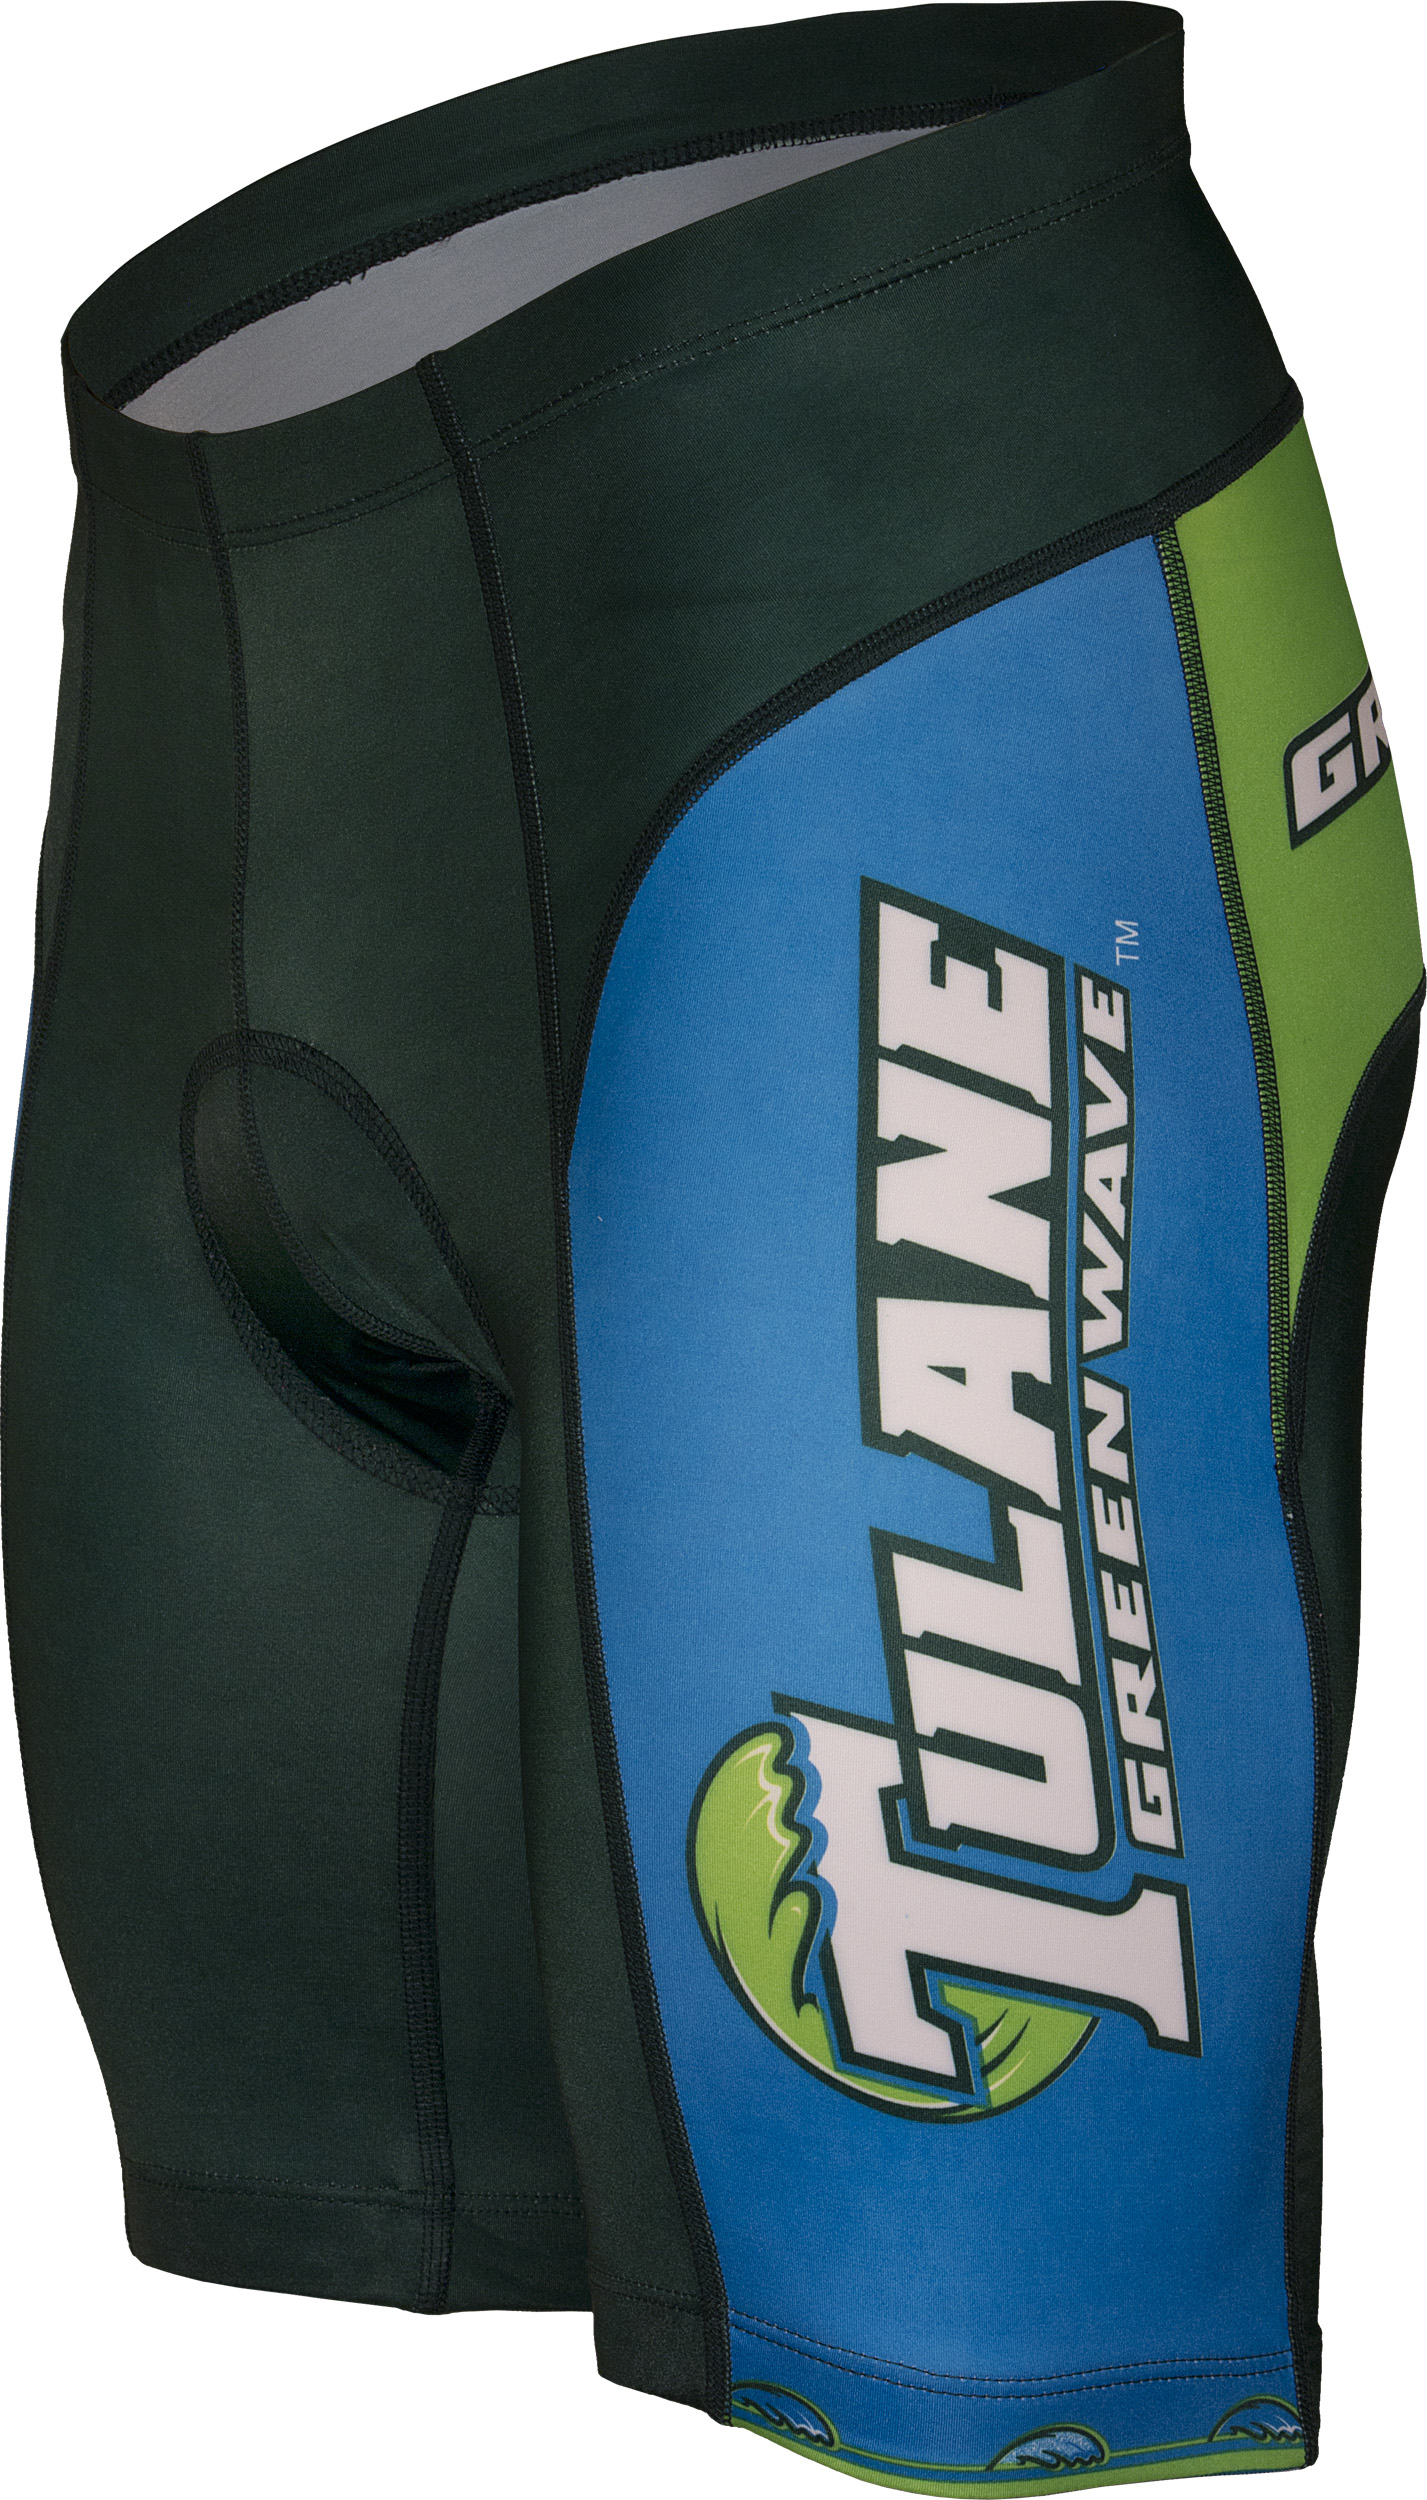 Tulane University Cycling Shorts